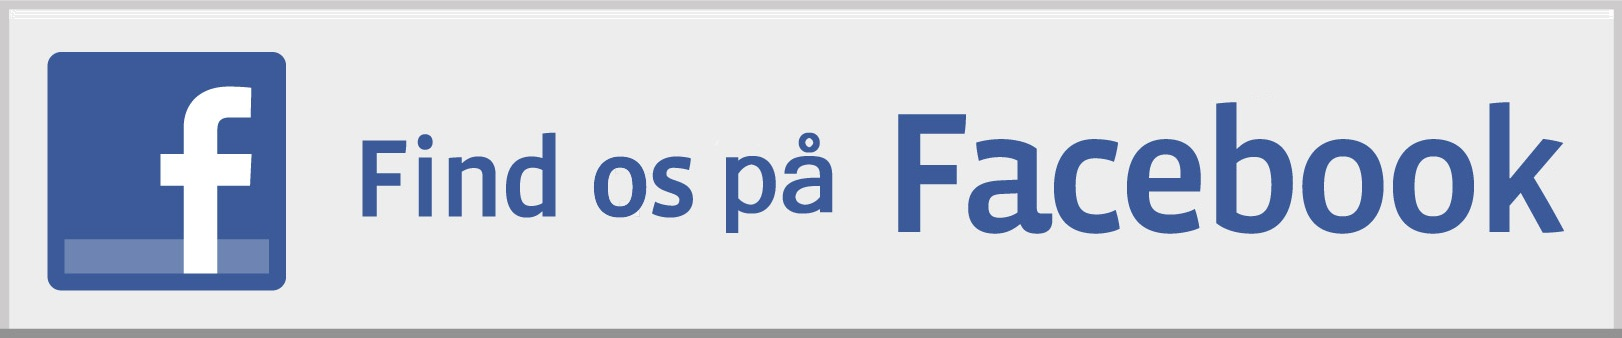 Find-os-paa-facebook 1